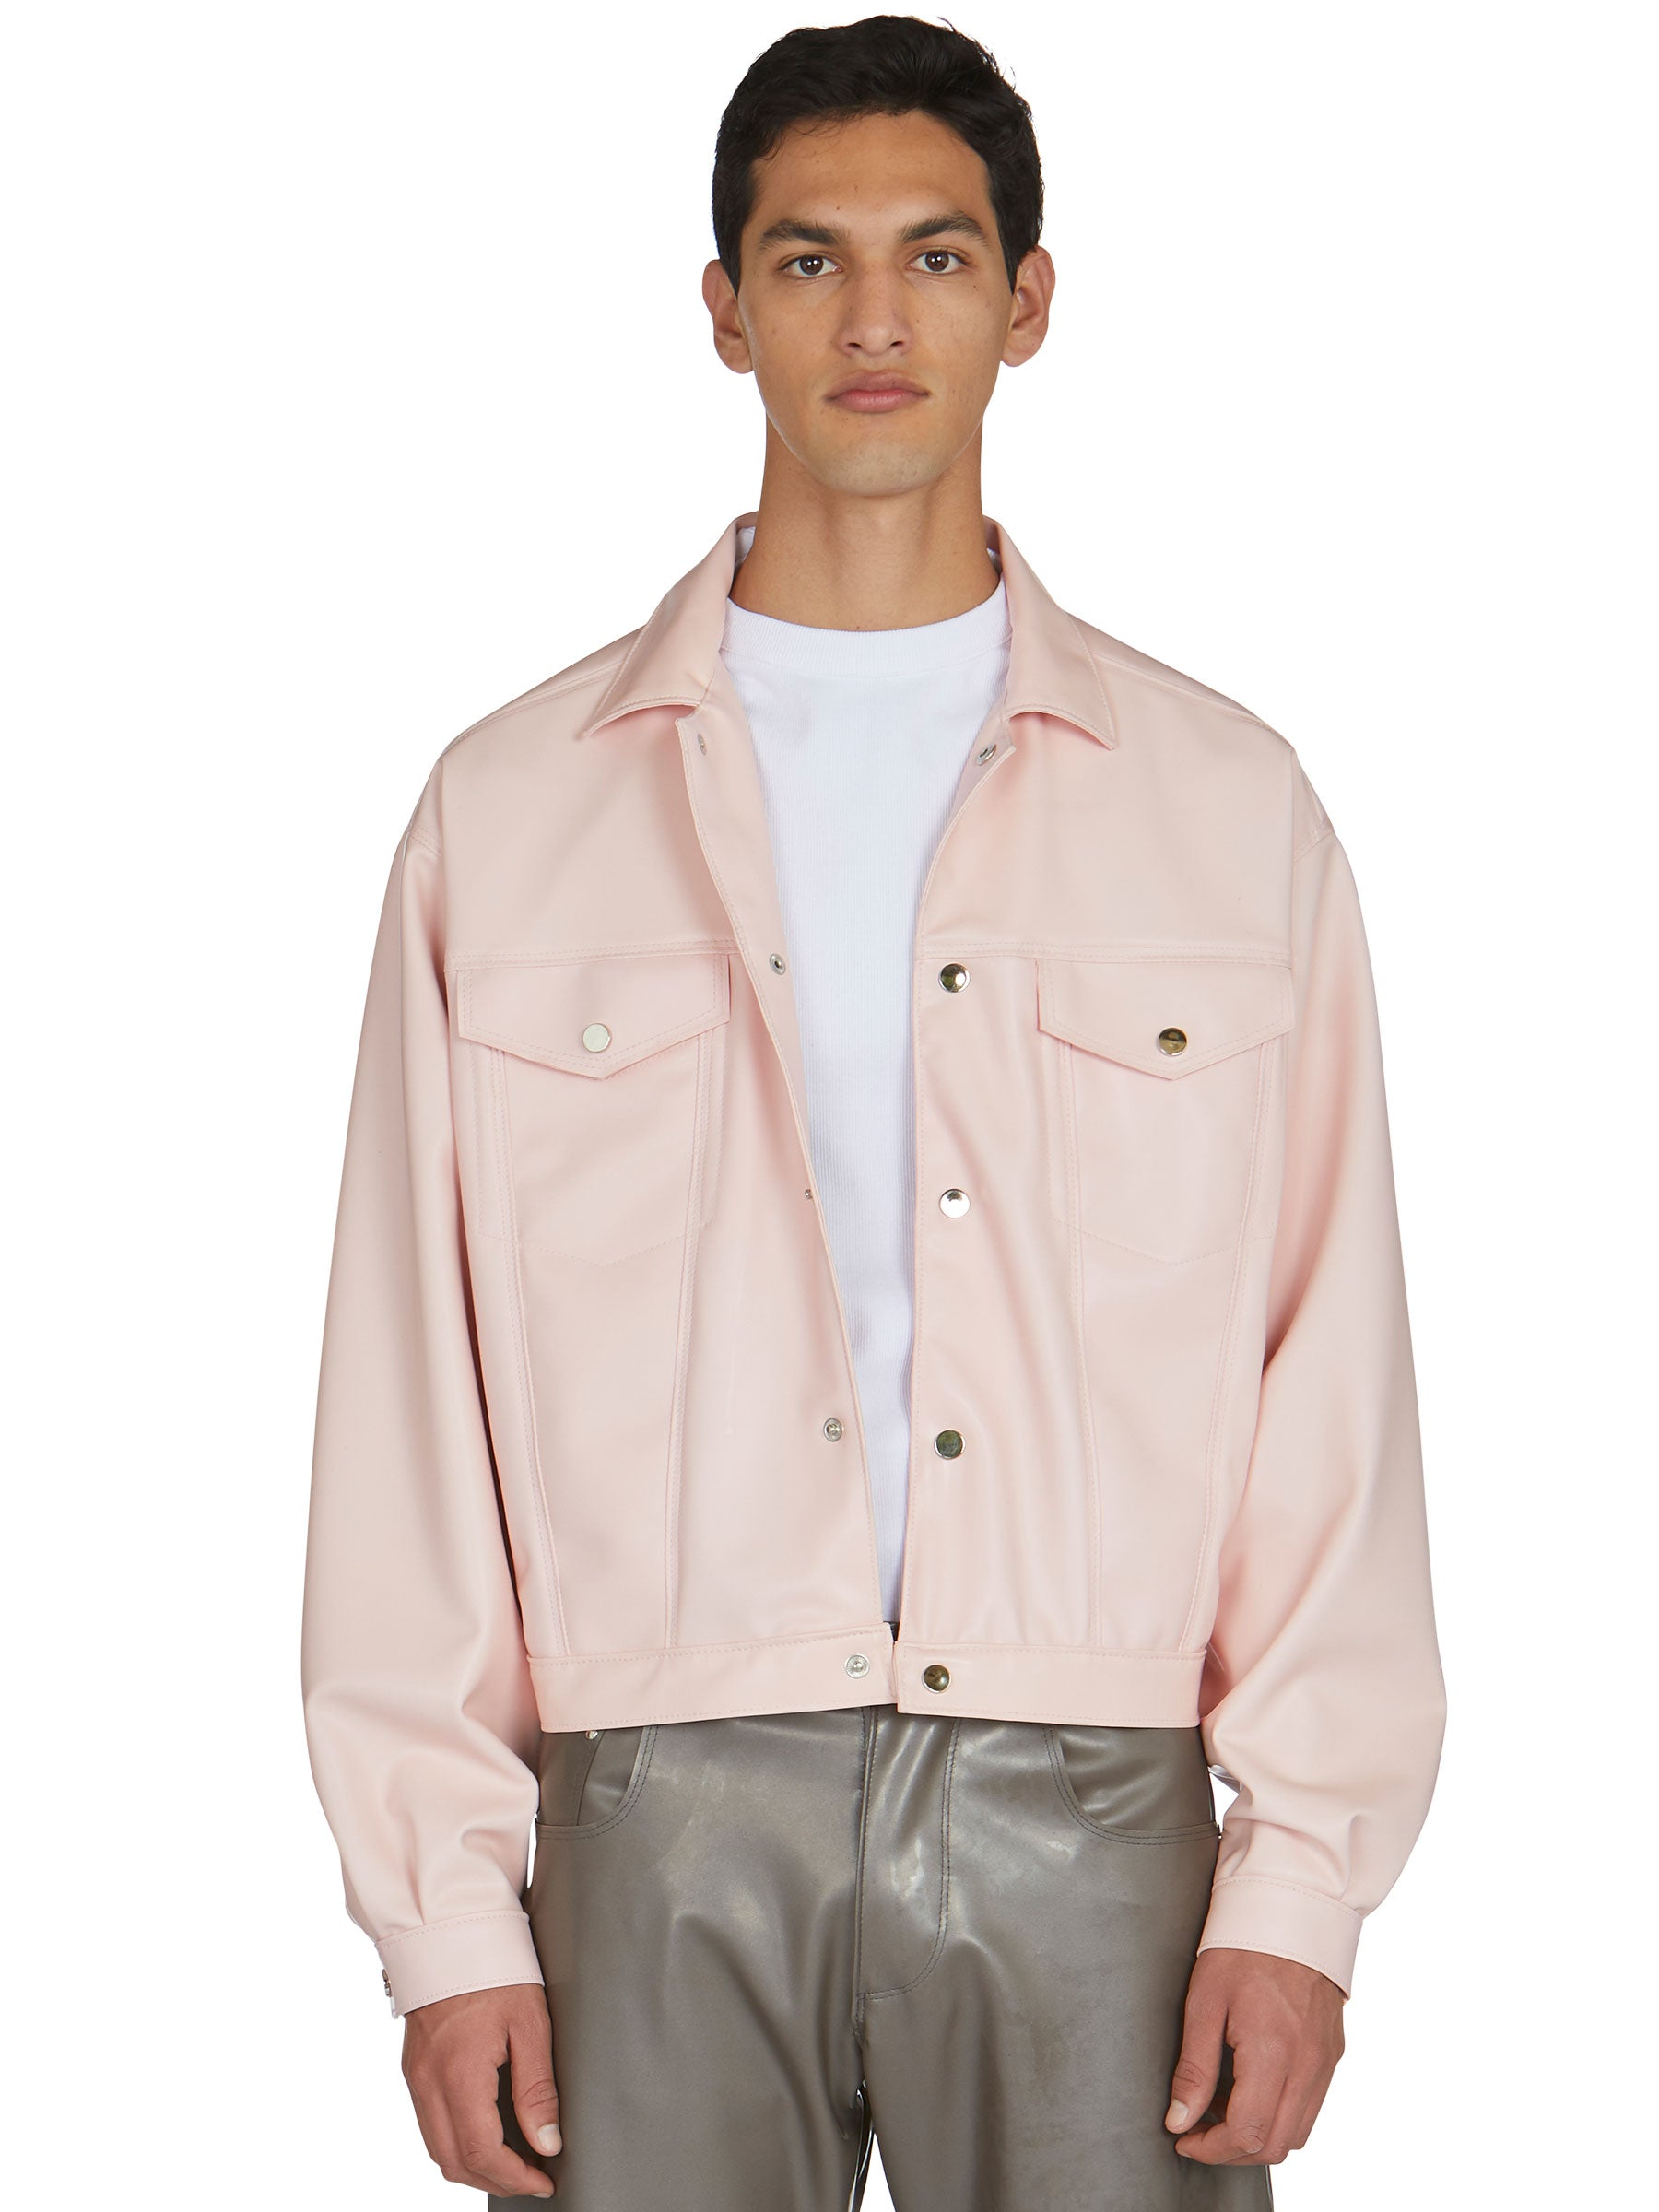 odd92 Shop Arthur Avellano Spring/Summer 2019 Menswear Pink Latex Jean Jacket - 3